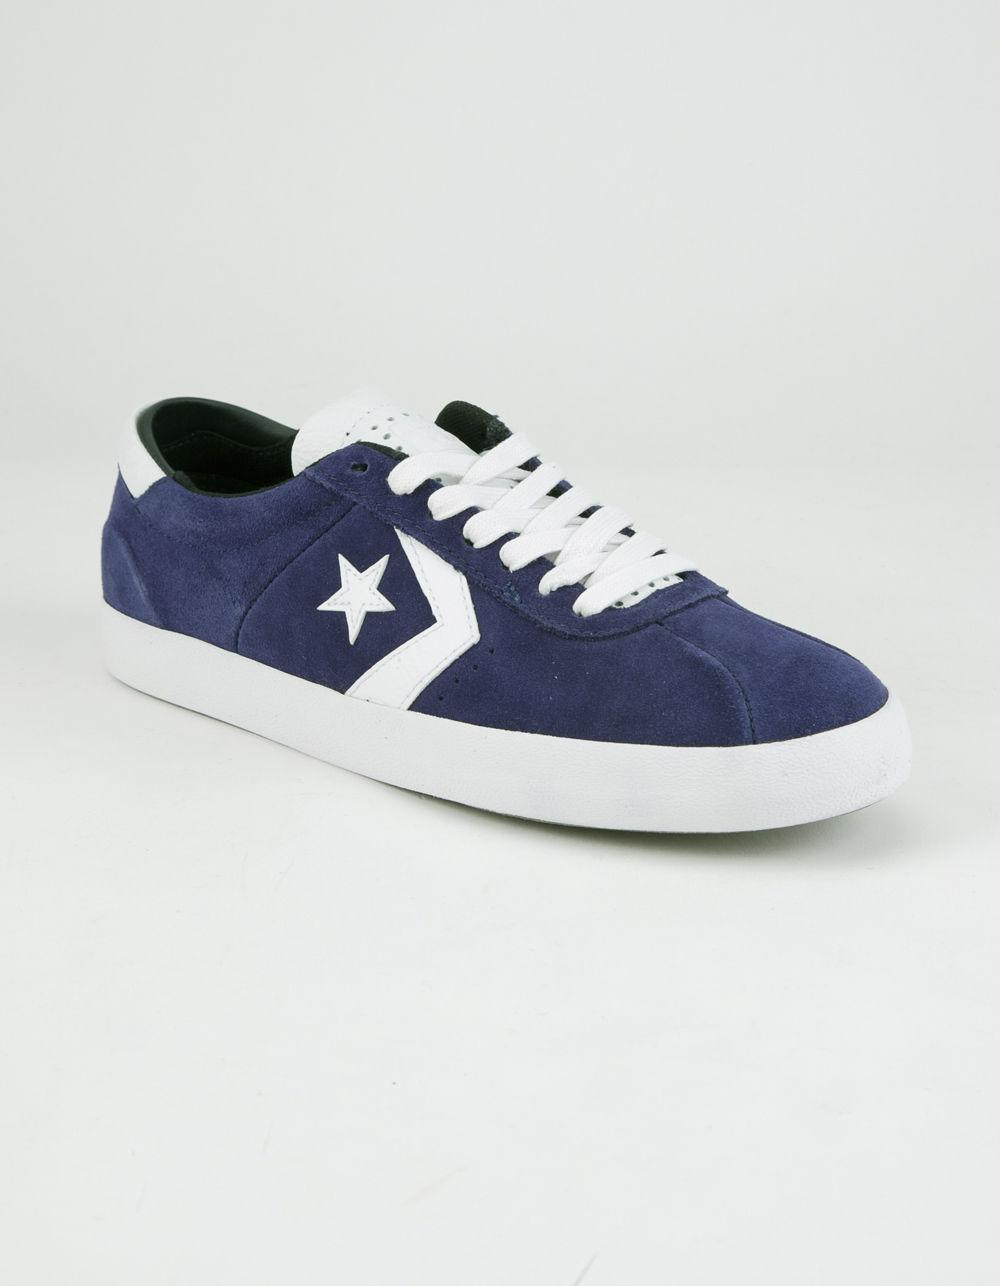 Lyst - Converse Breakpoint Pro Suede Shoes in Blue for Men 8f3c1948e